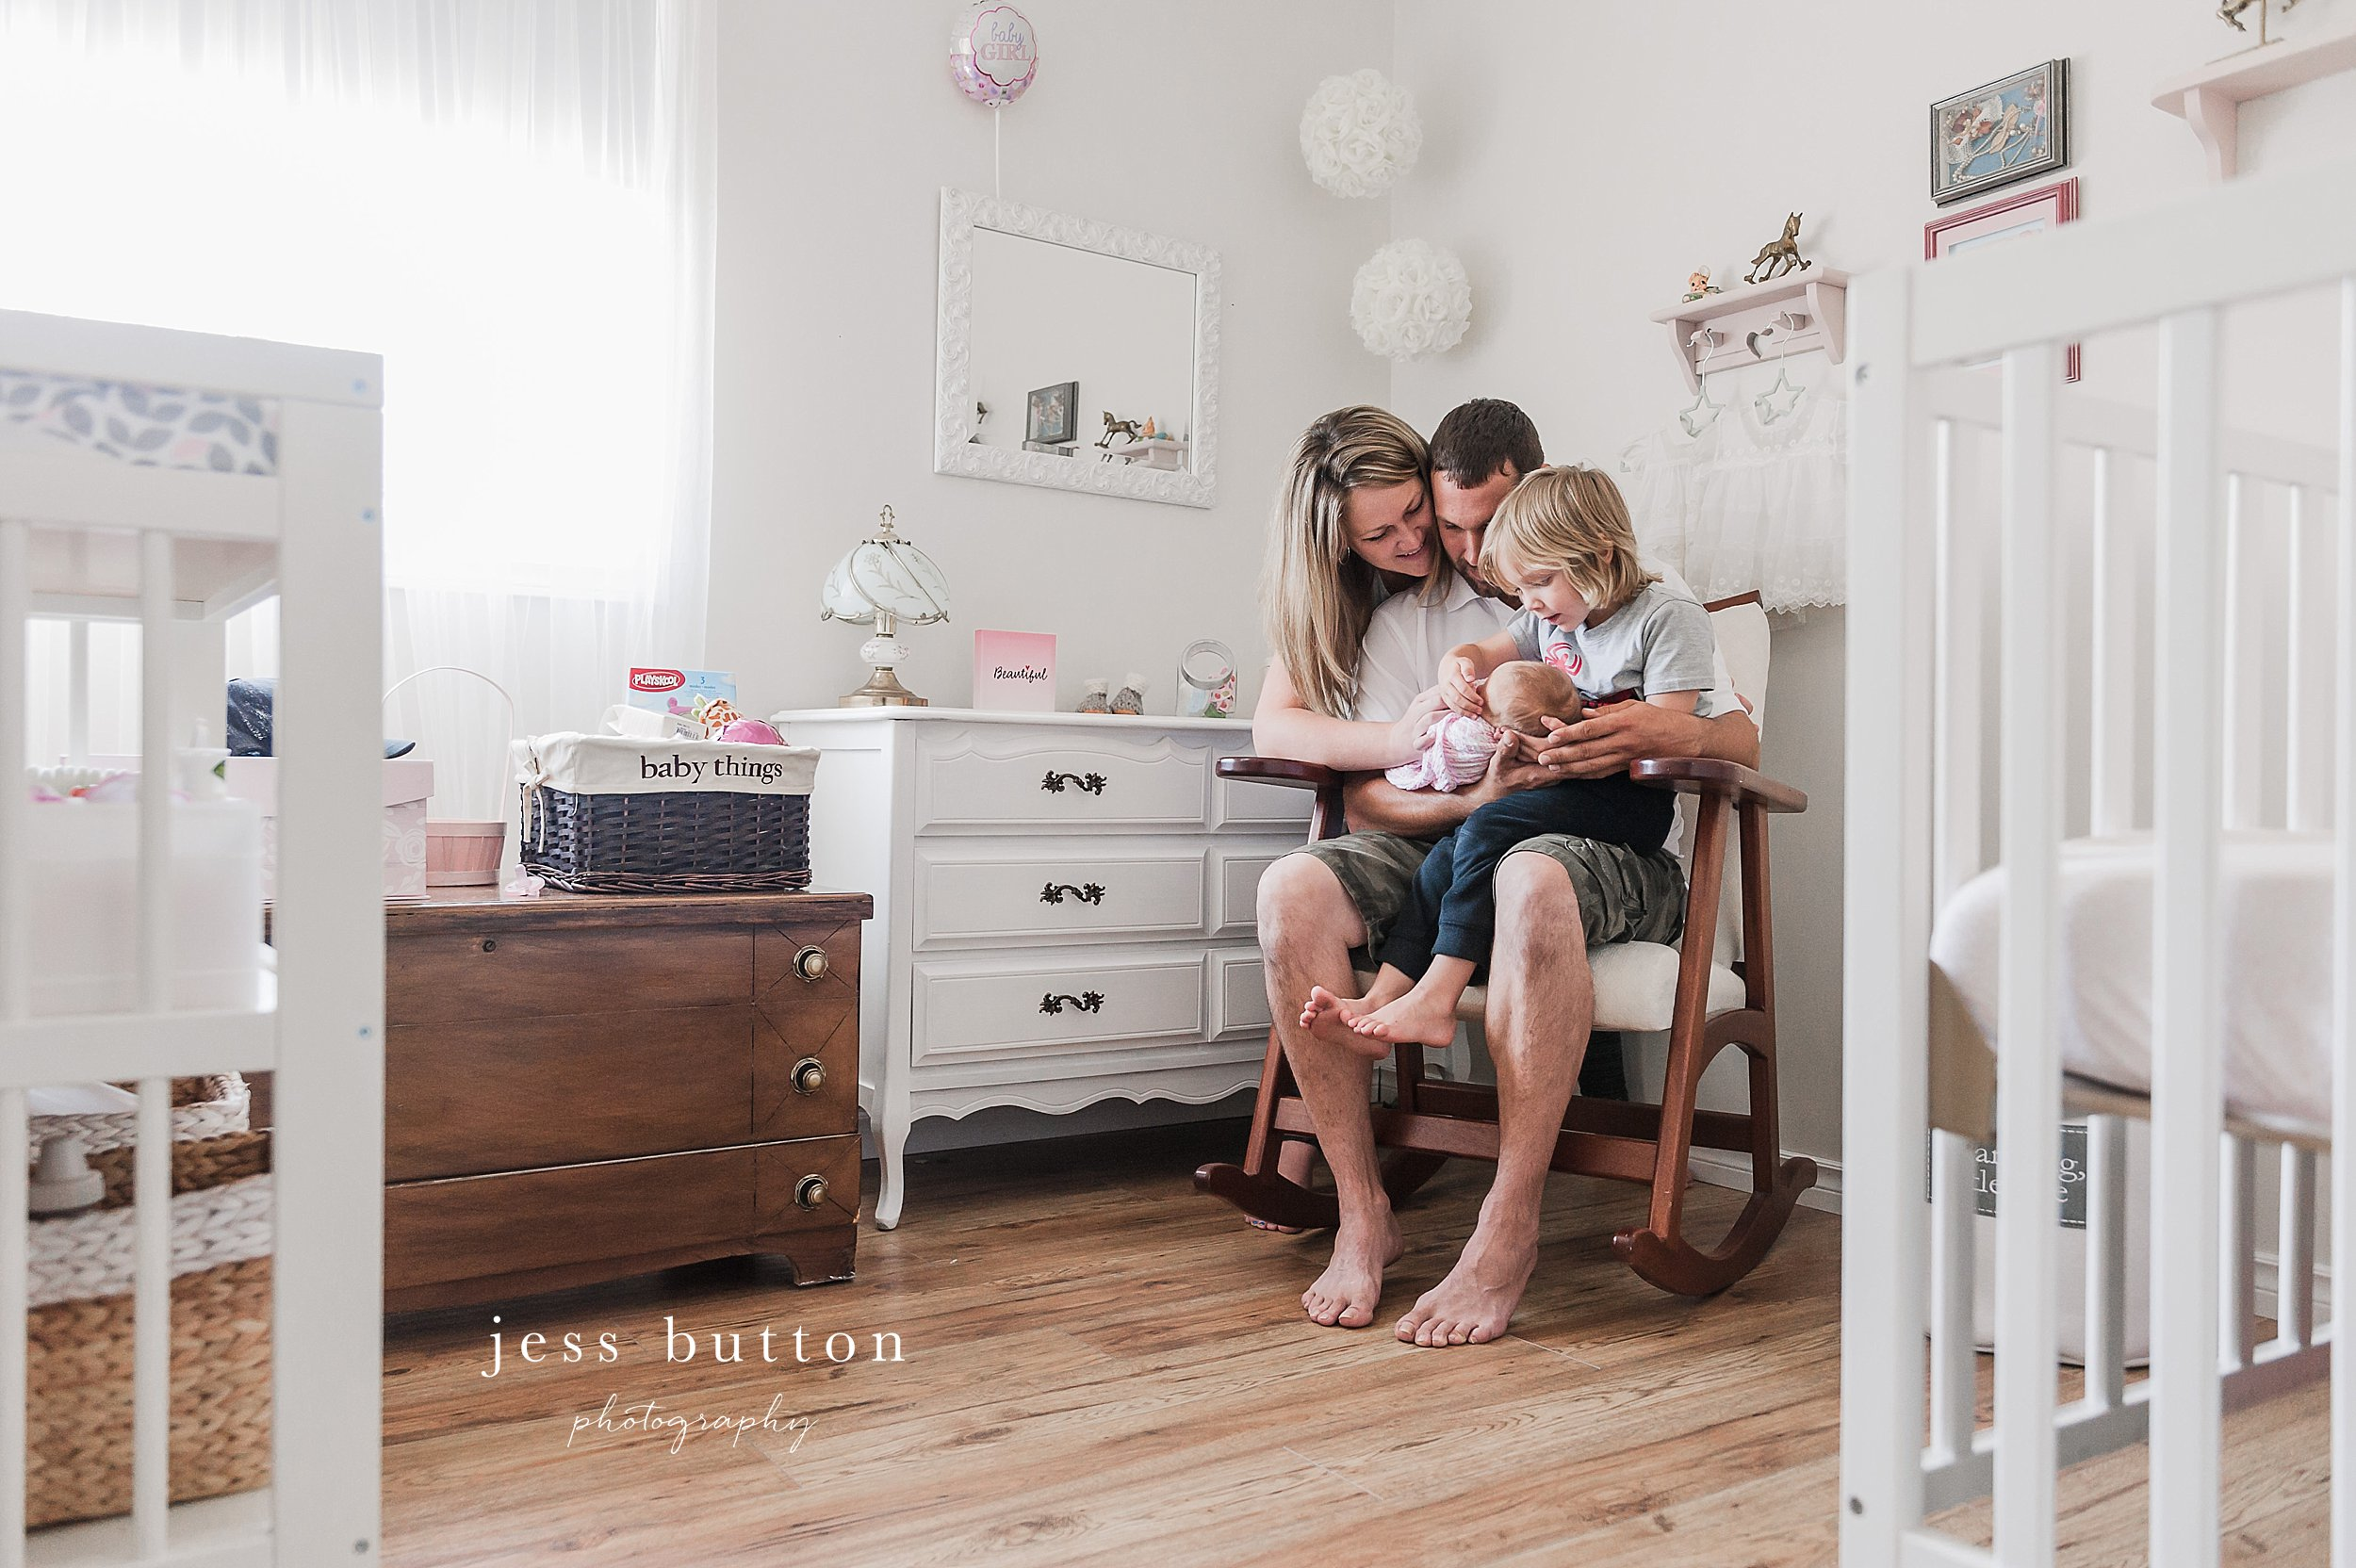 niagara newborn lifestyle photographer - St Catharines baby photos - 8 day old girl with family of four at home in pink and white nursery